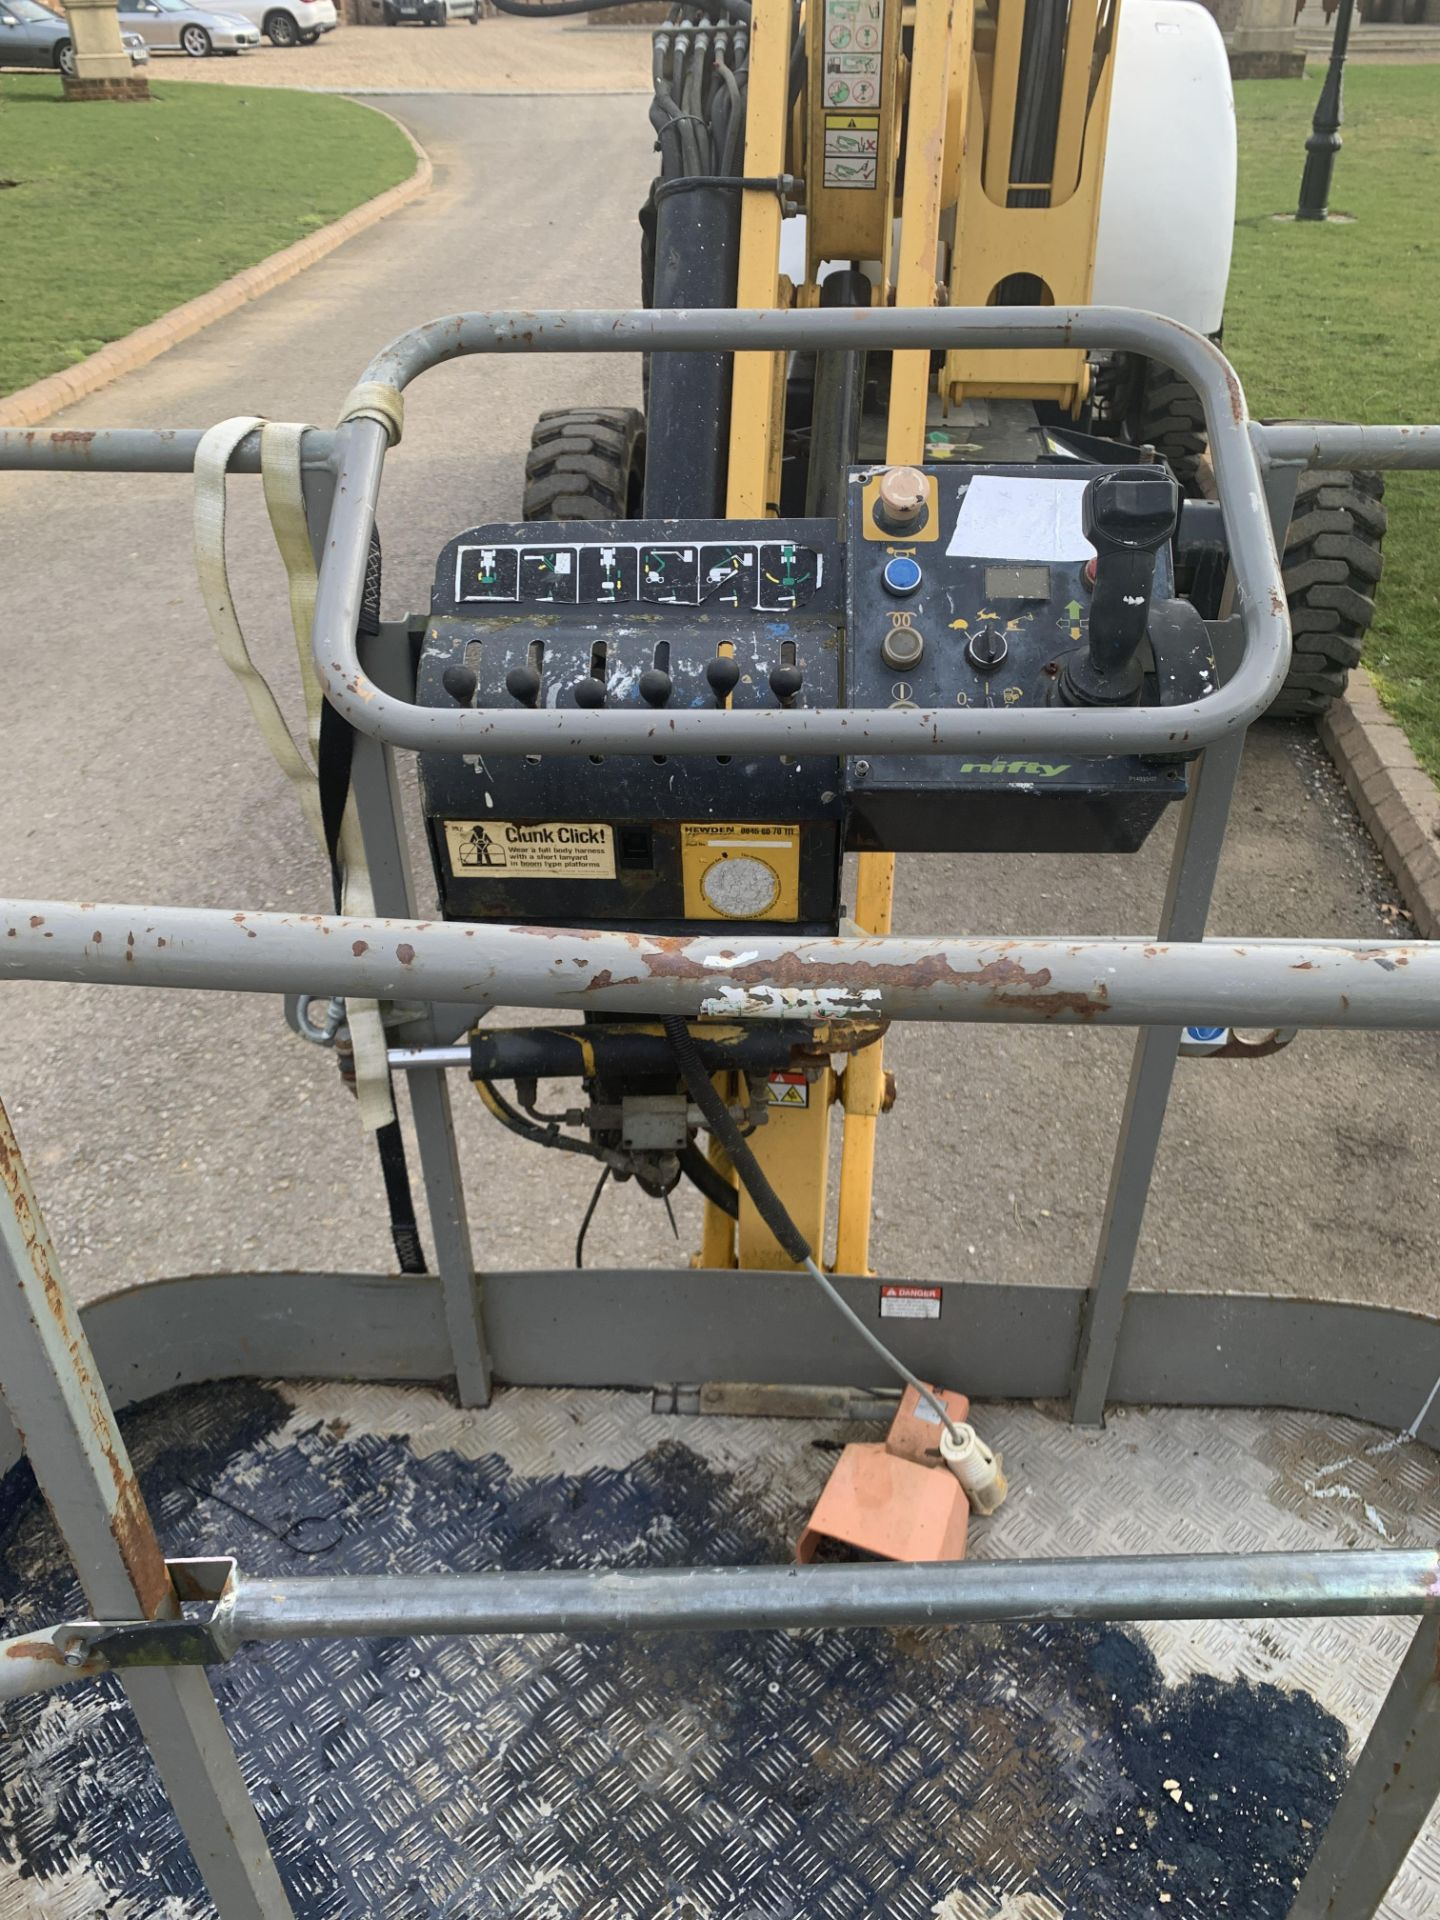 Lot 24 - NIFTY LIFT hR21D 4X4 CHERRY PICKER, RUNS WORKS AND LIFTS *PLUS VAT*